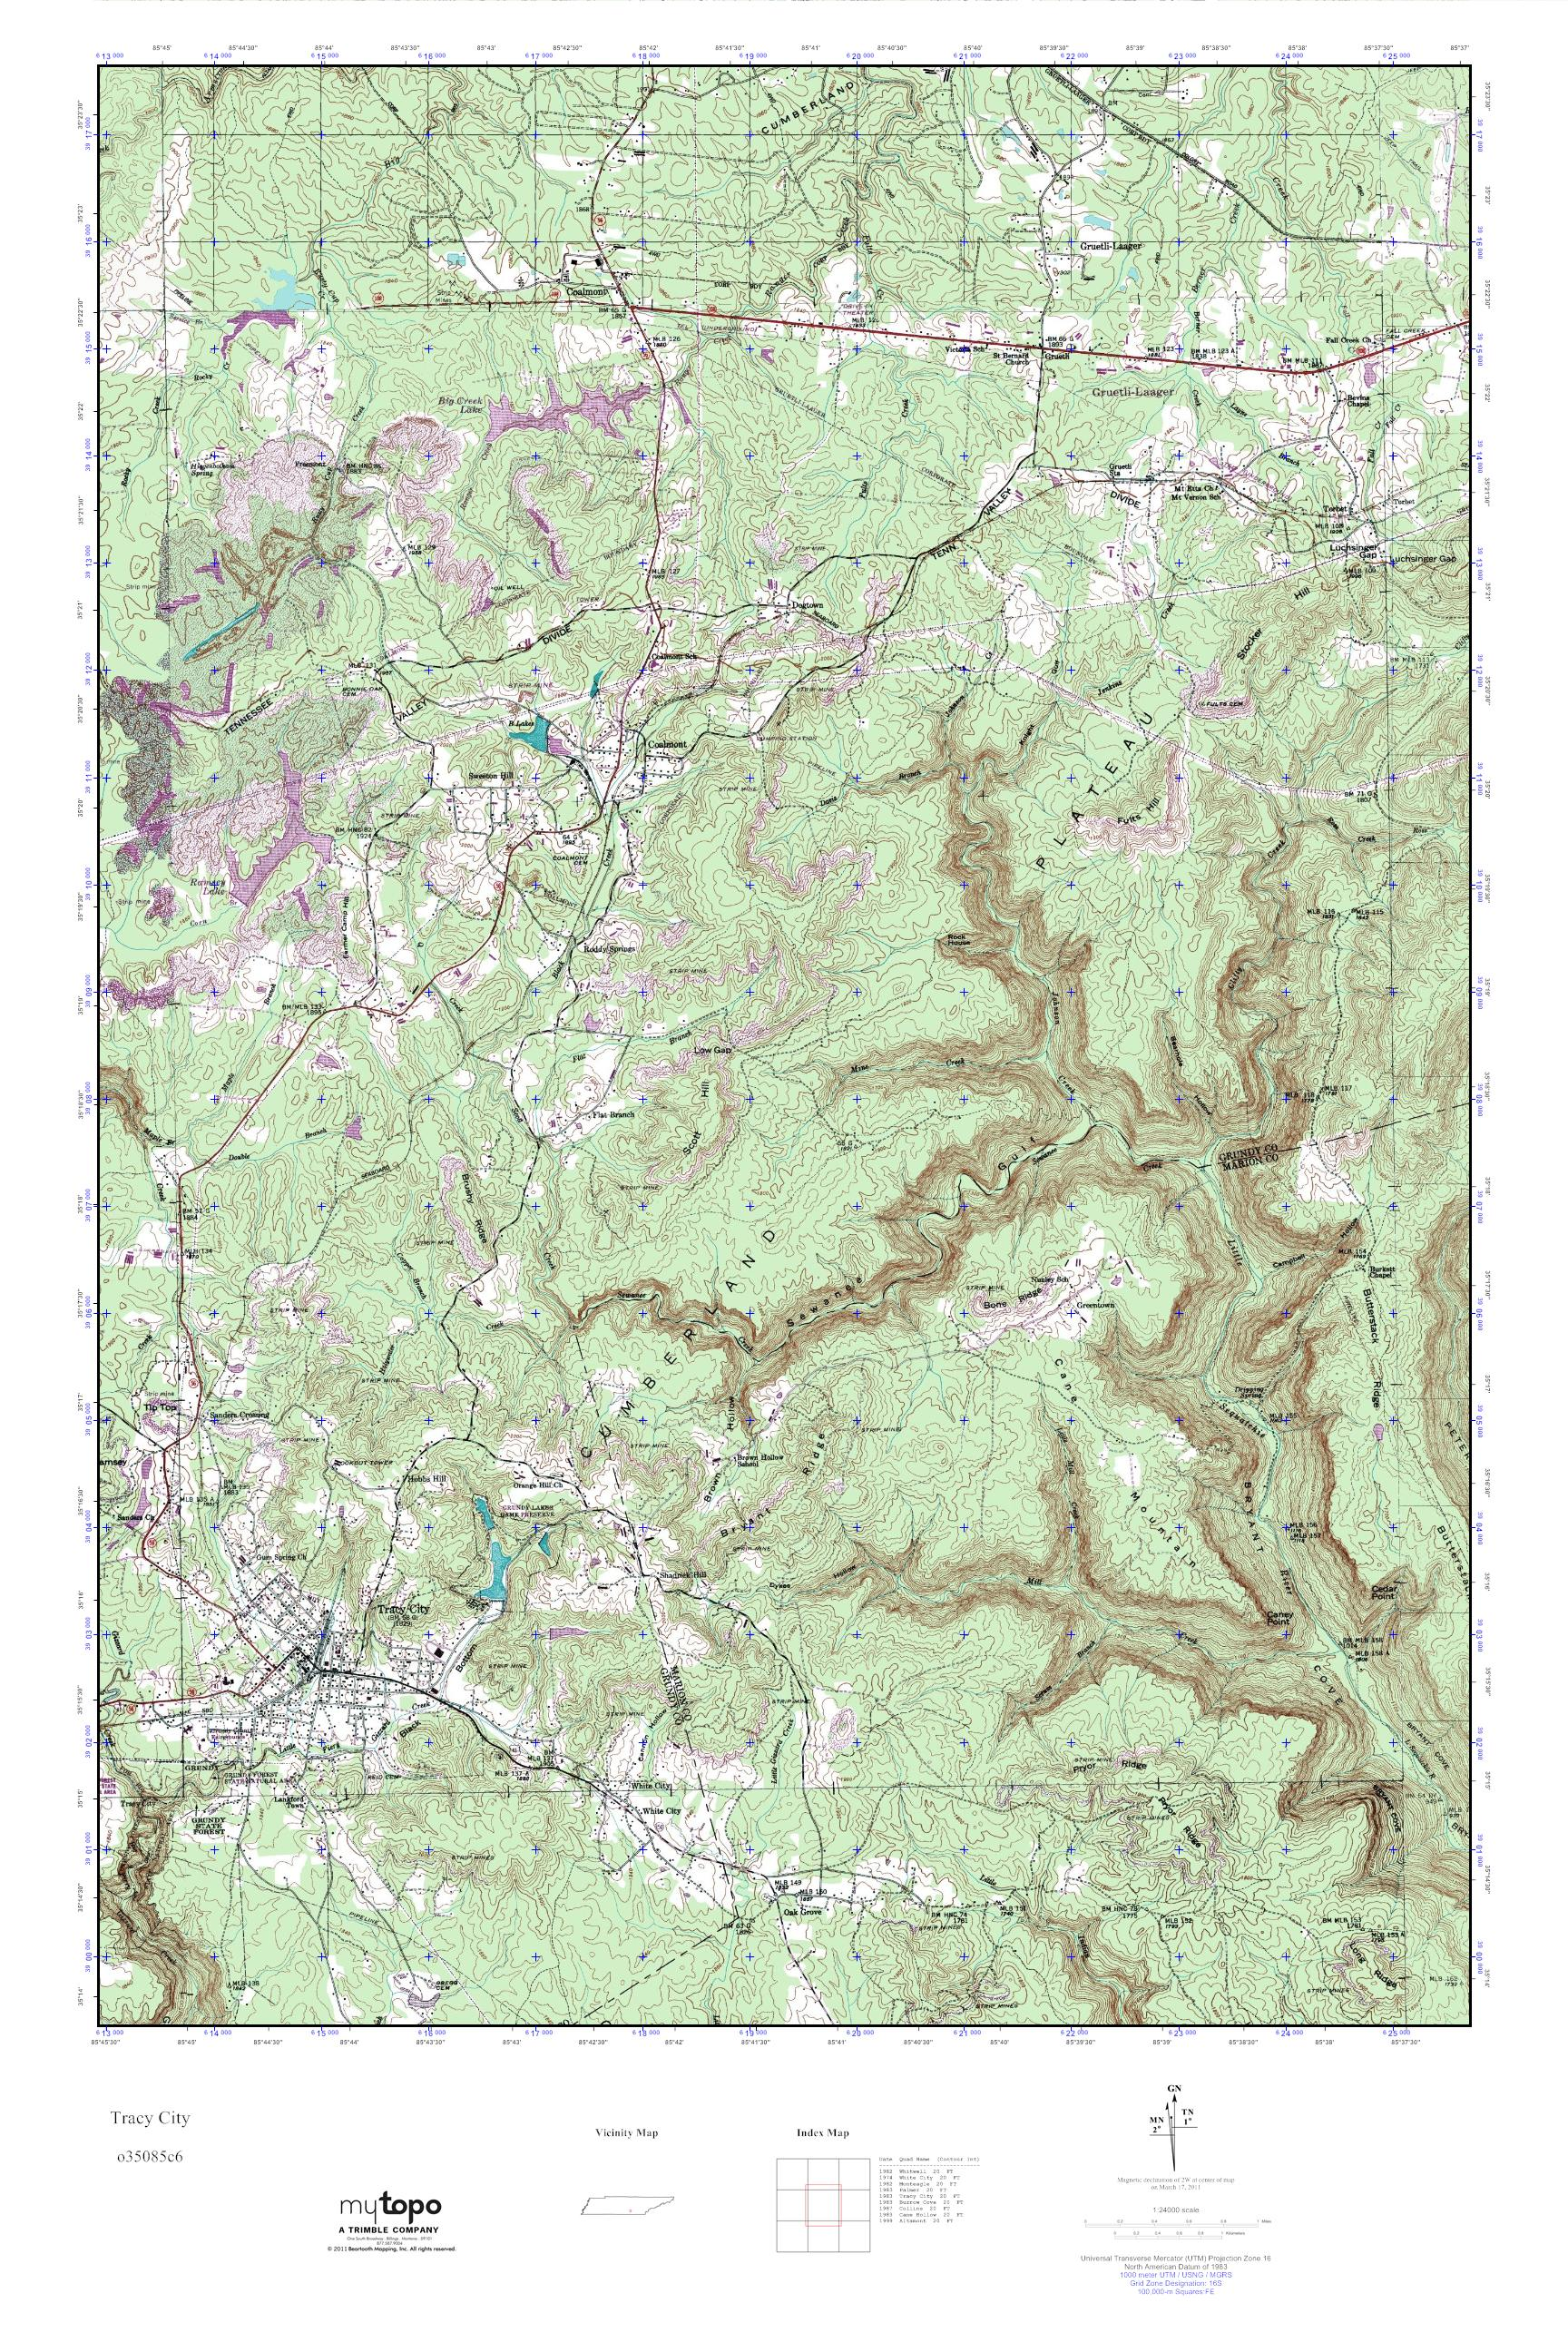 Mytopo Tracy City Tennessee Usgs Quad Topo Map